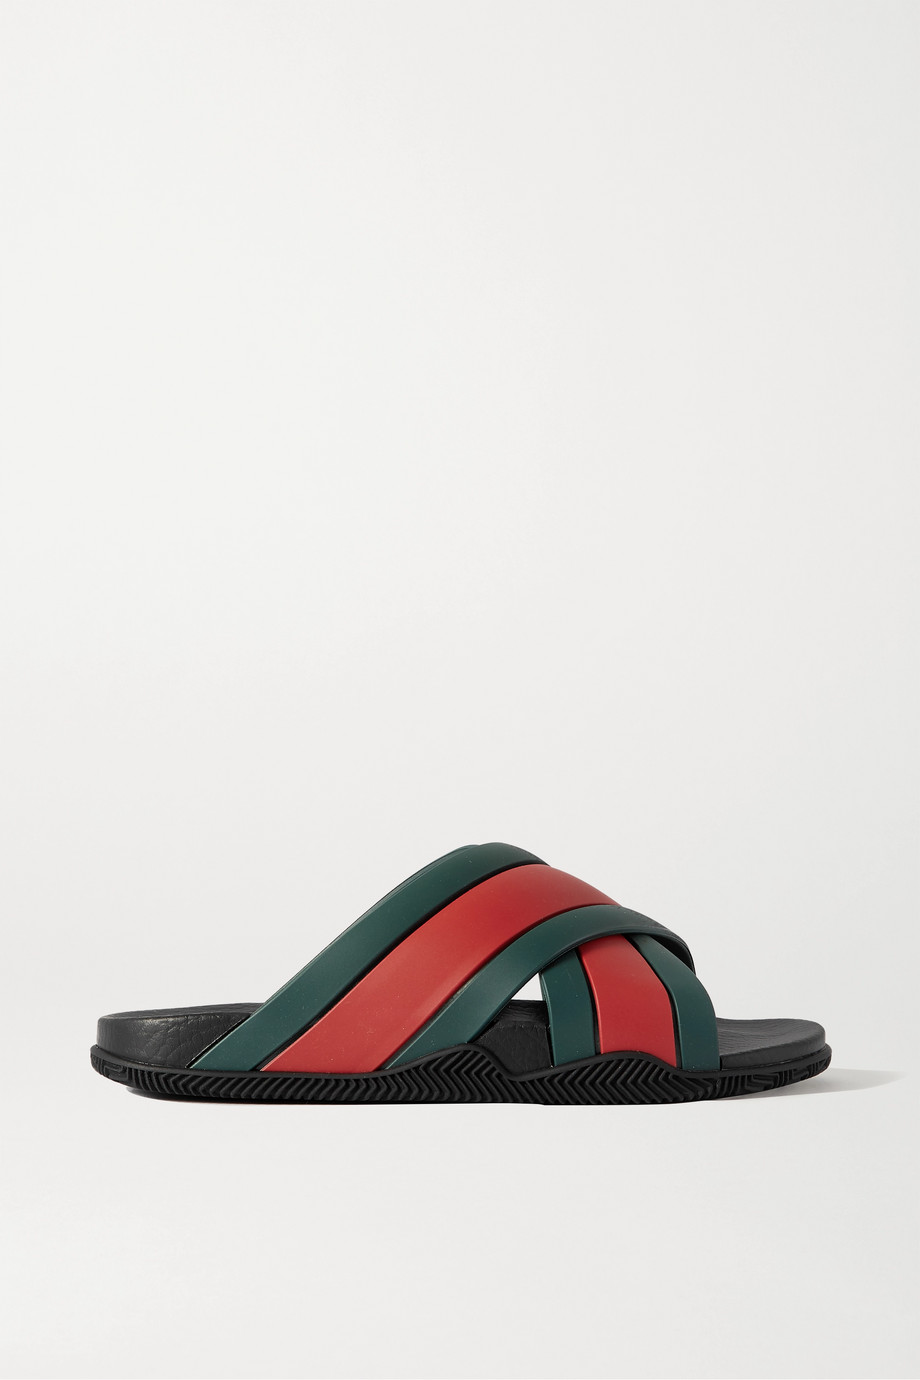 Gucci Agrado striped rubber slides